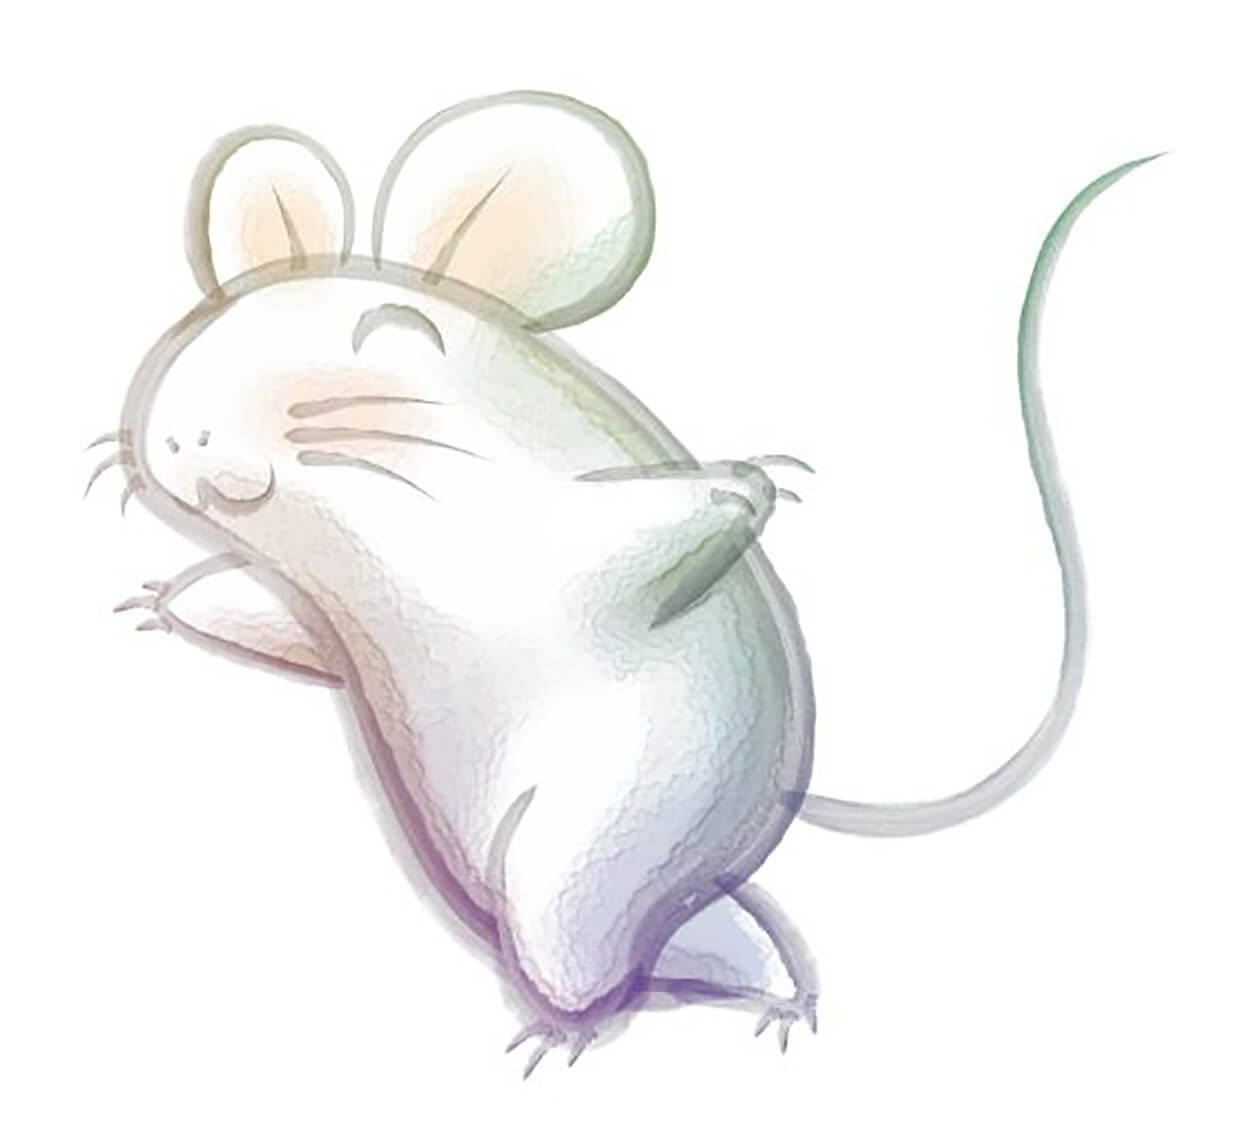 Figure mouse 4